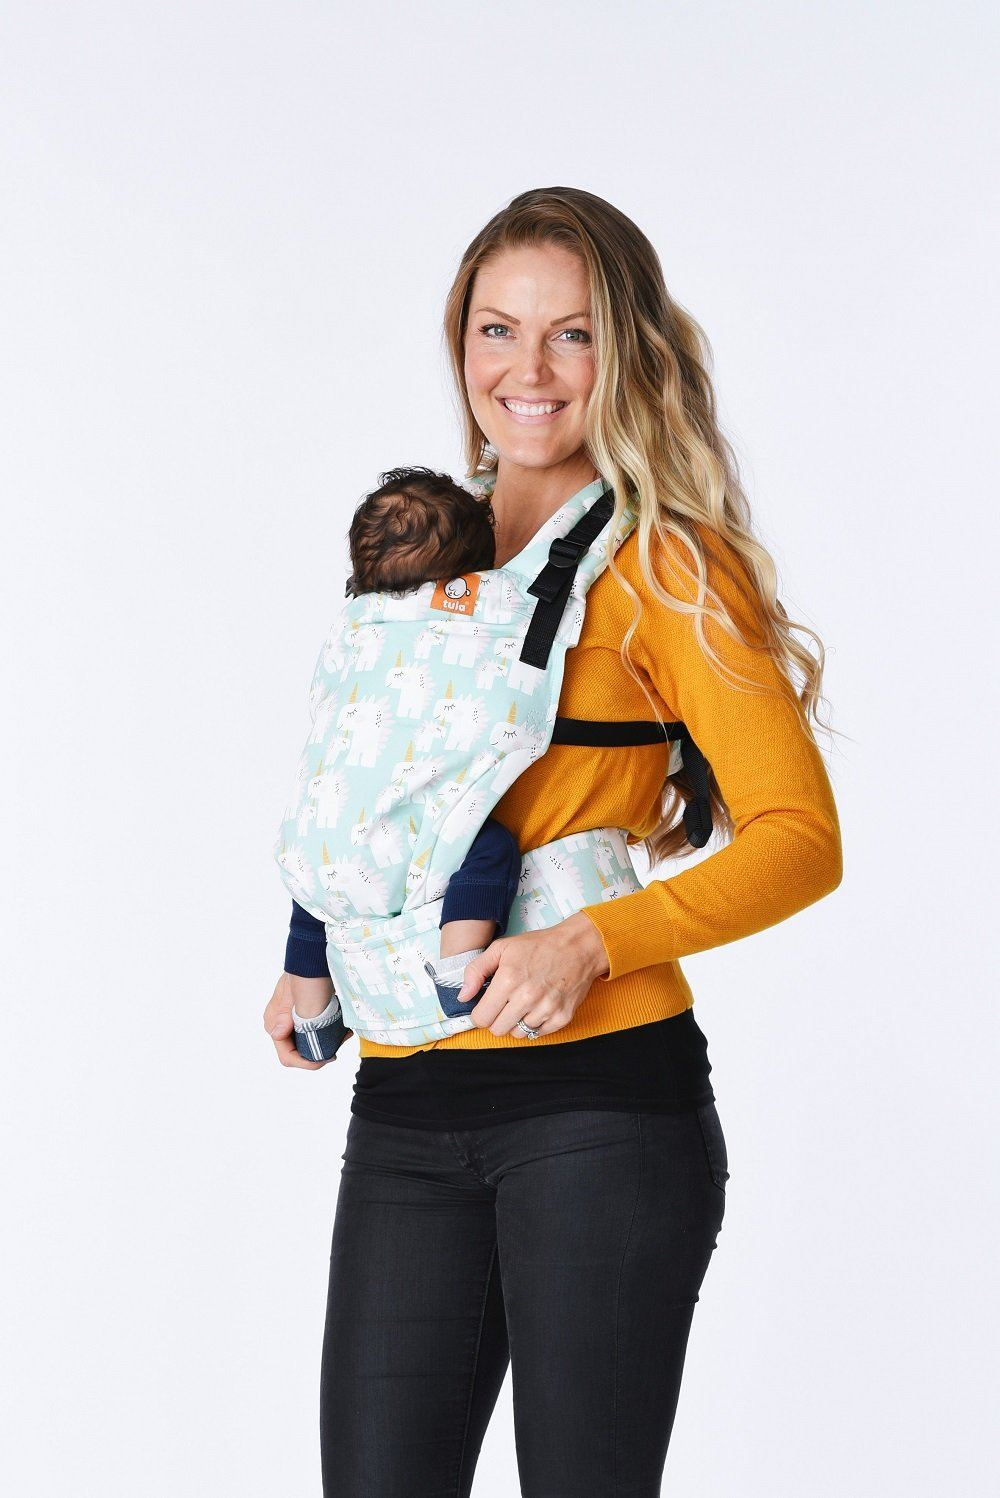 Unisaurus - Tula Standard Carrier Ergonomic Baby Carrier | Baby Tula